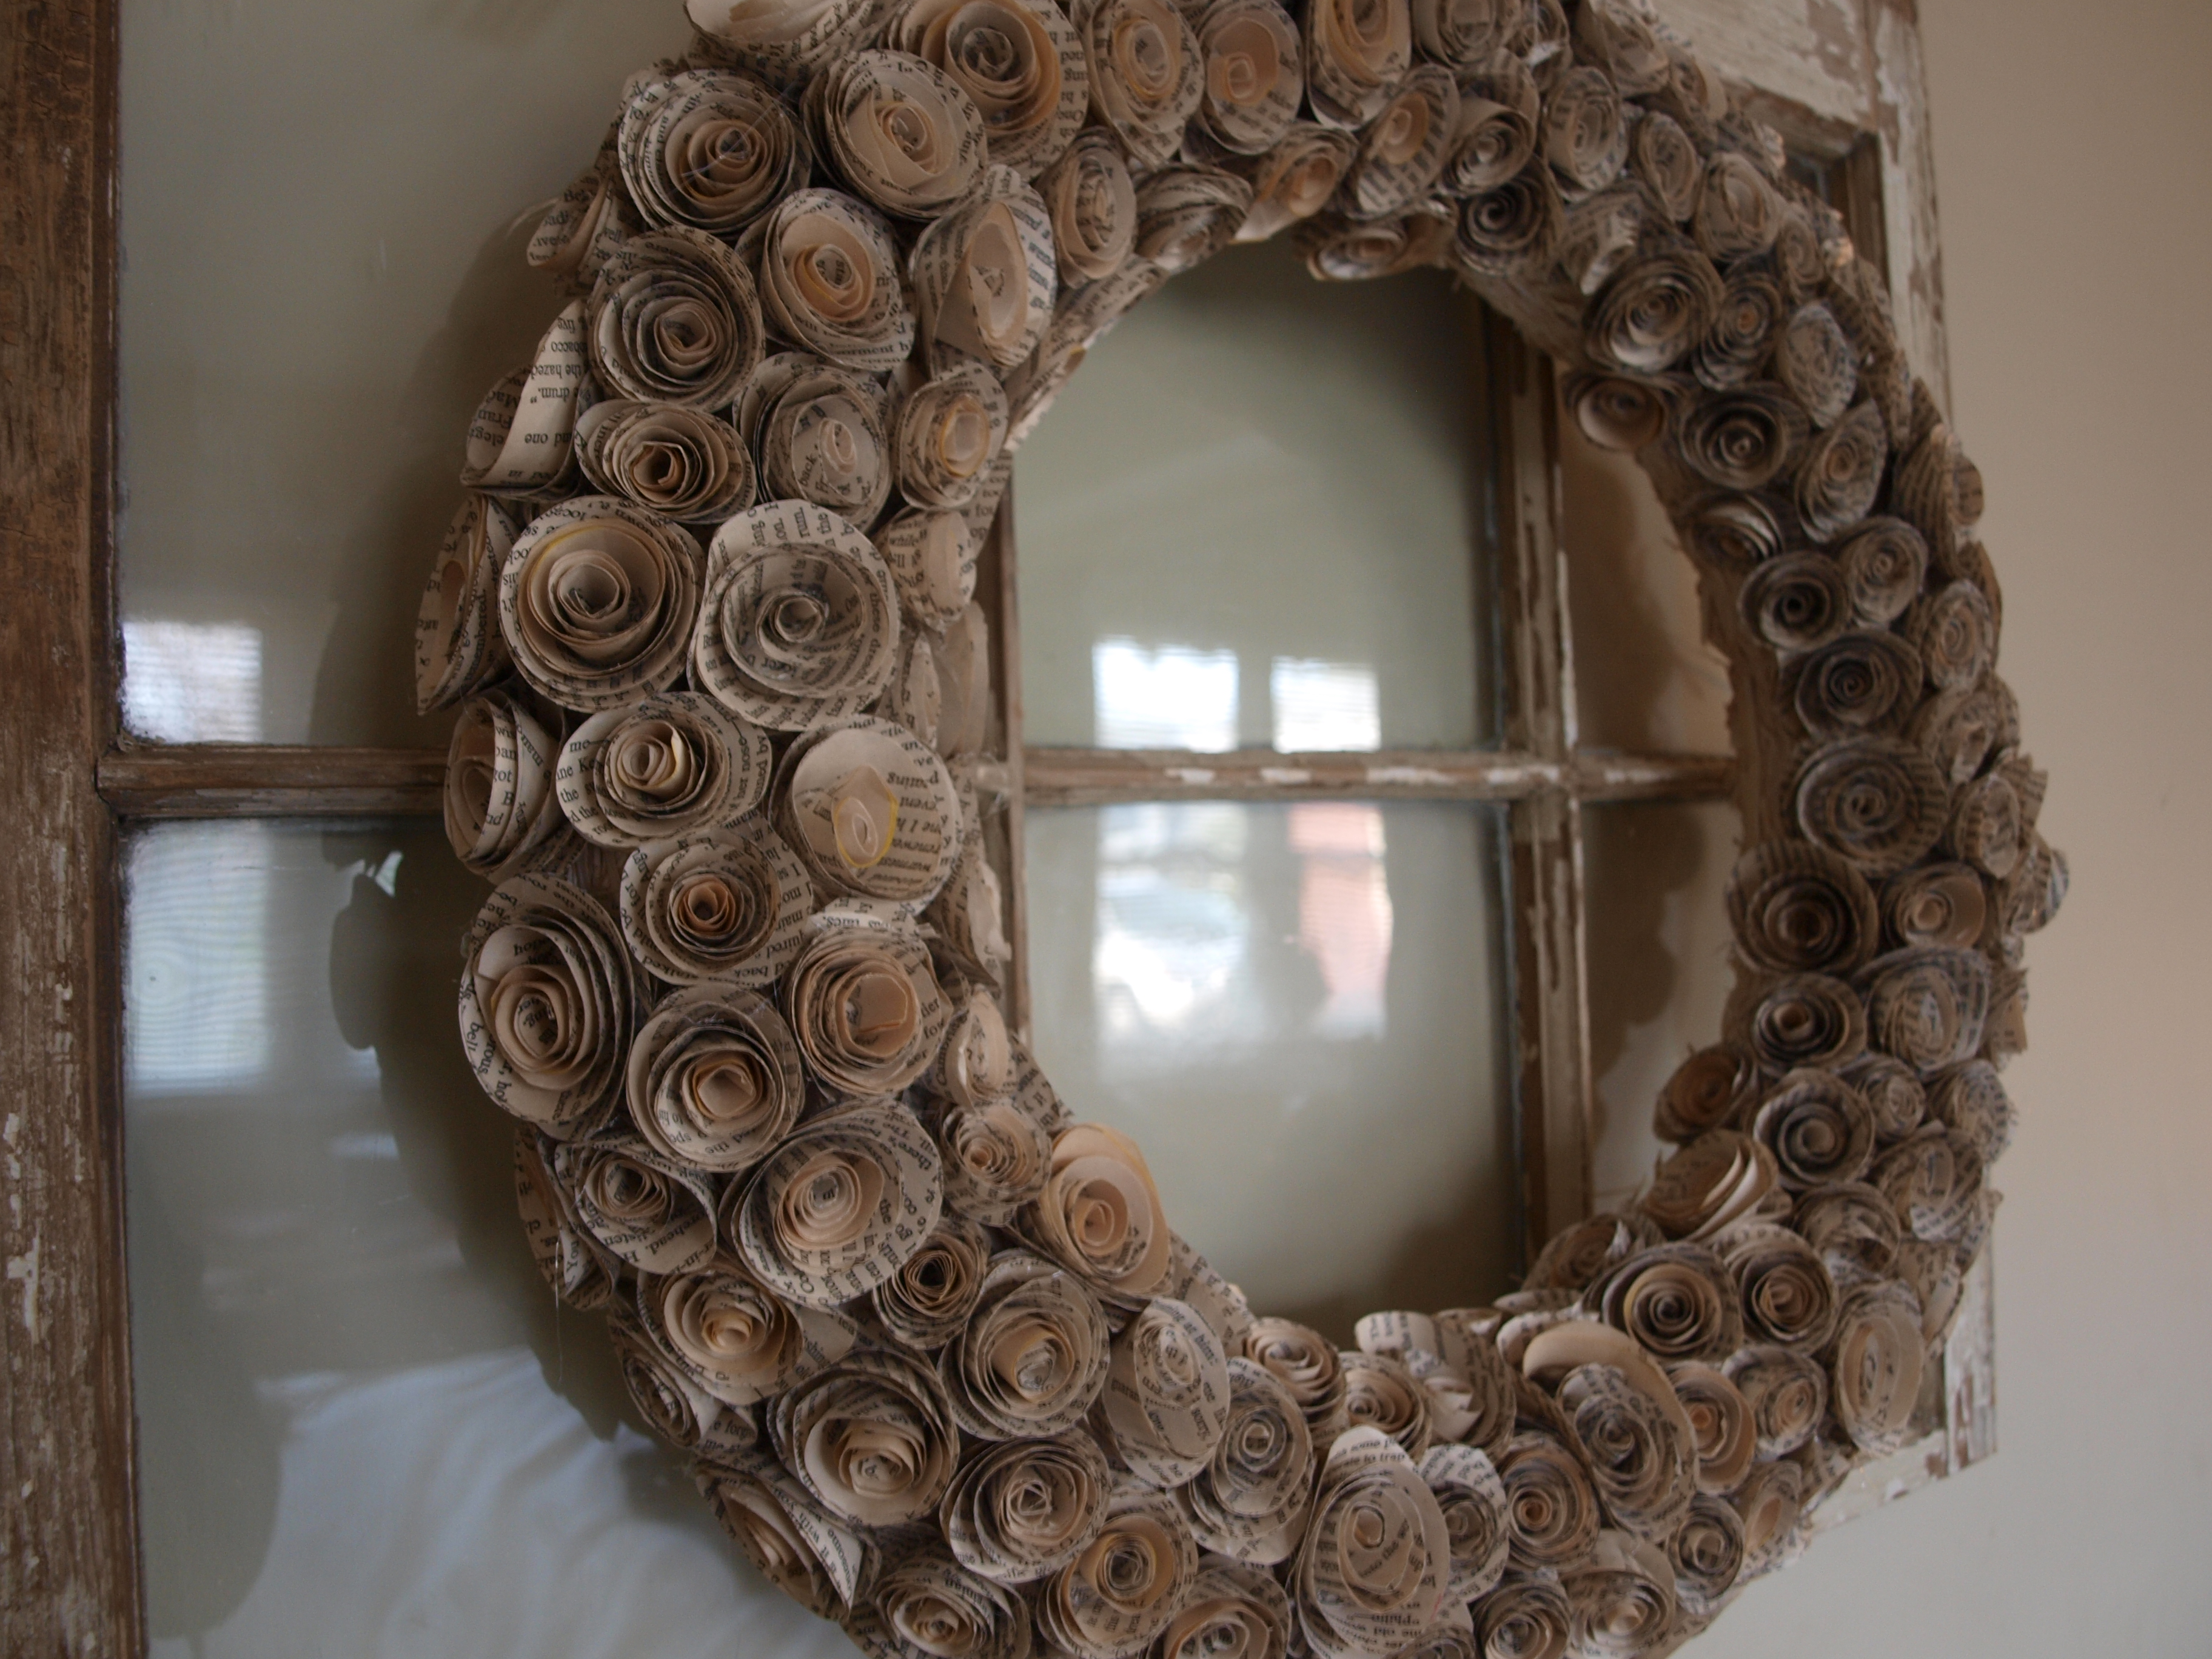 How To Make A Book Page Rose Wreath Home Spun Style